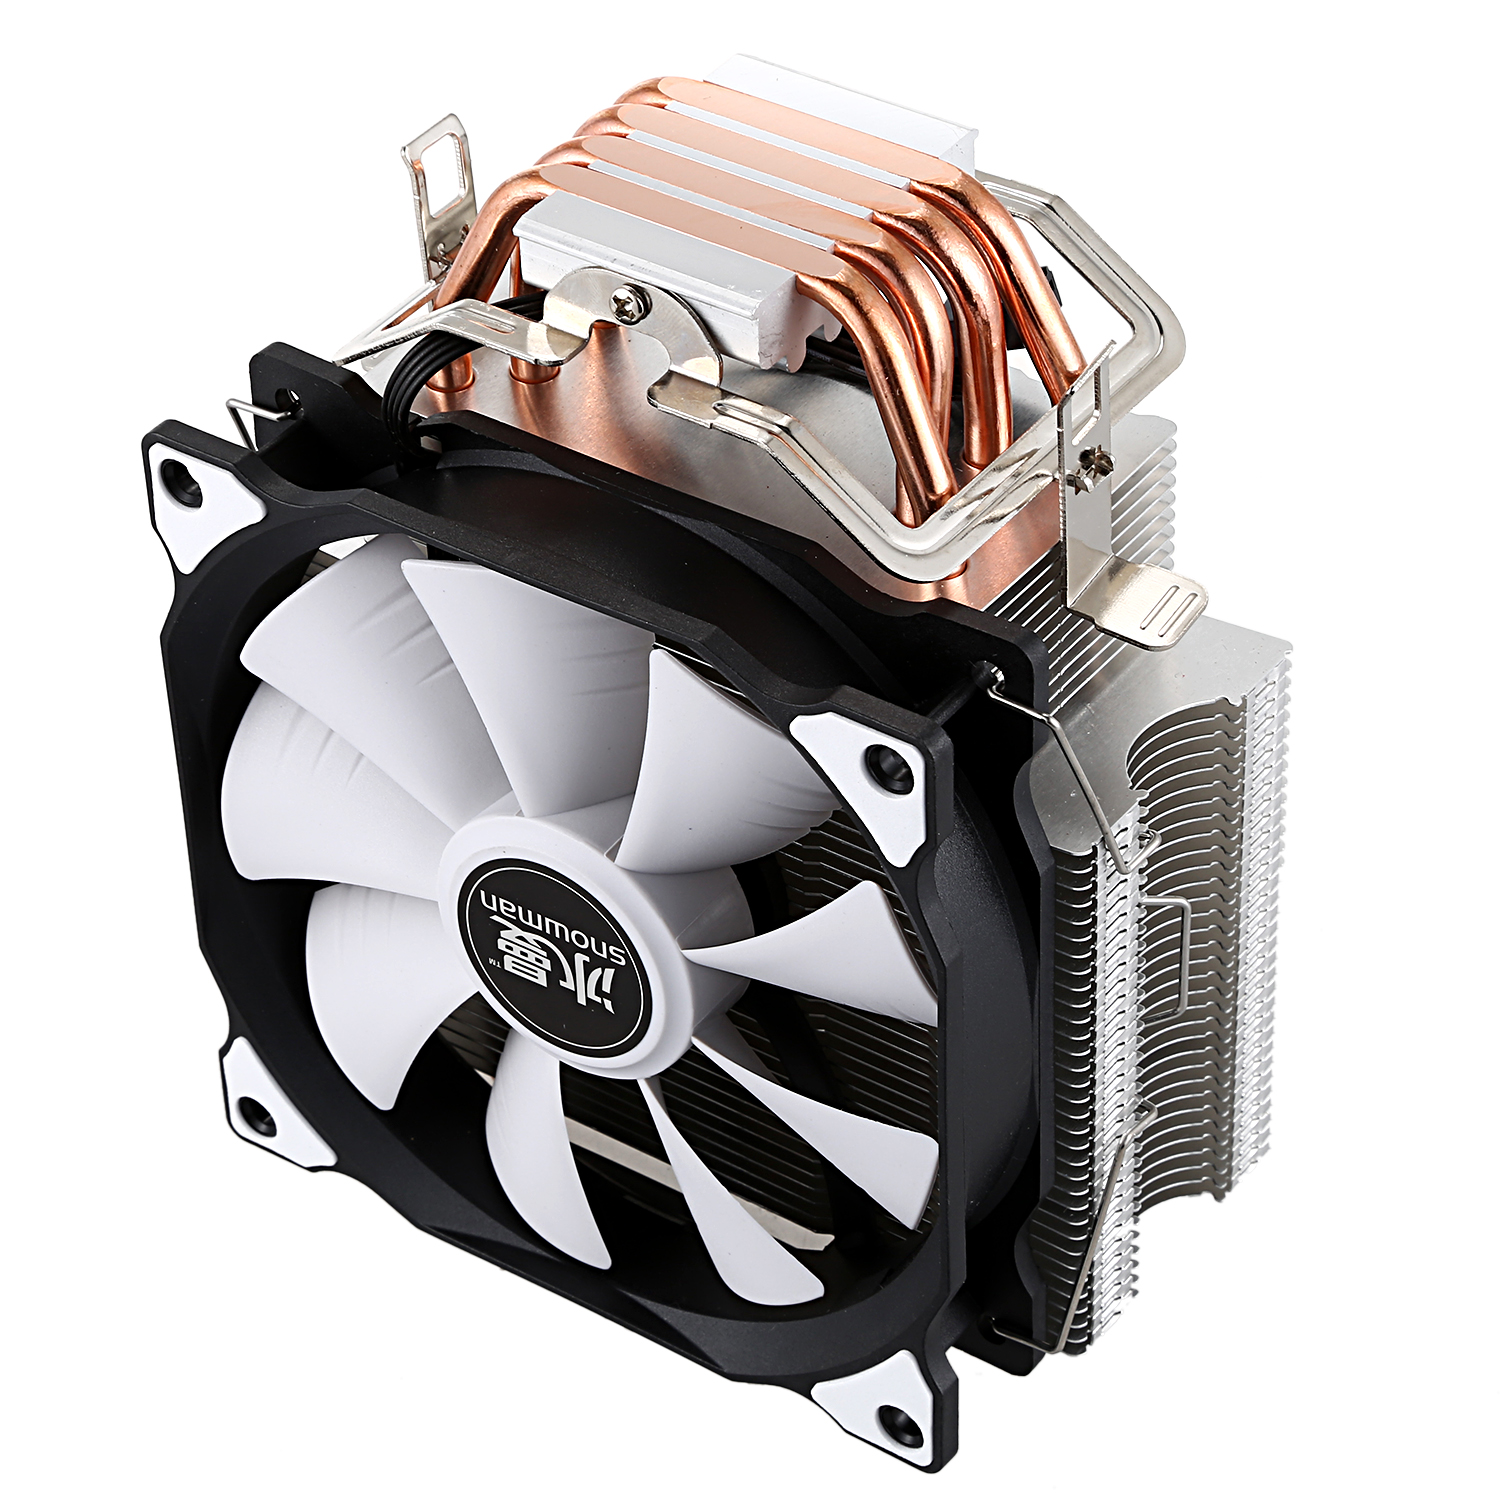 Image 4 - SNOWMAN CPU Cooler Master 5 Direct Contact Heatpipes freeze Tower Cooling System CPU Cooling Fan with PWM Fans-in Fans & Cooling from Computer & Office